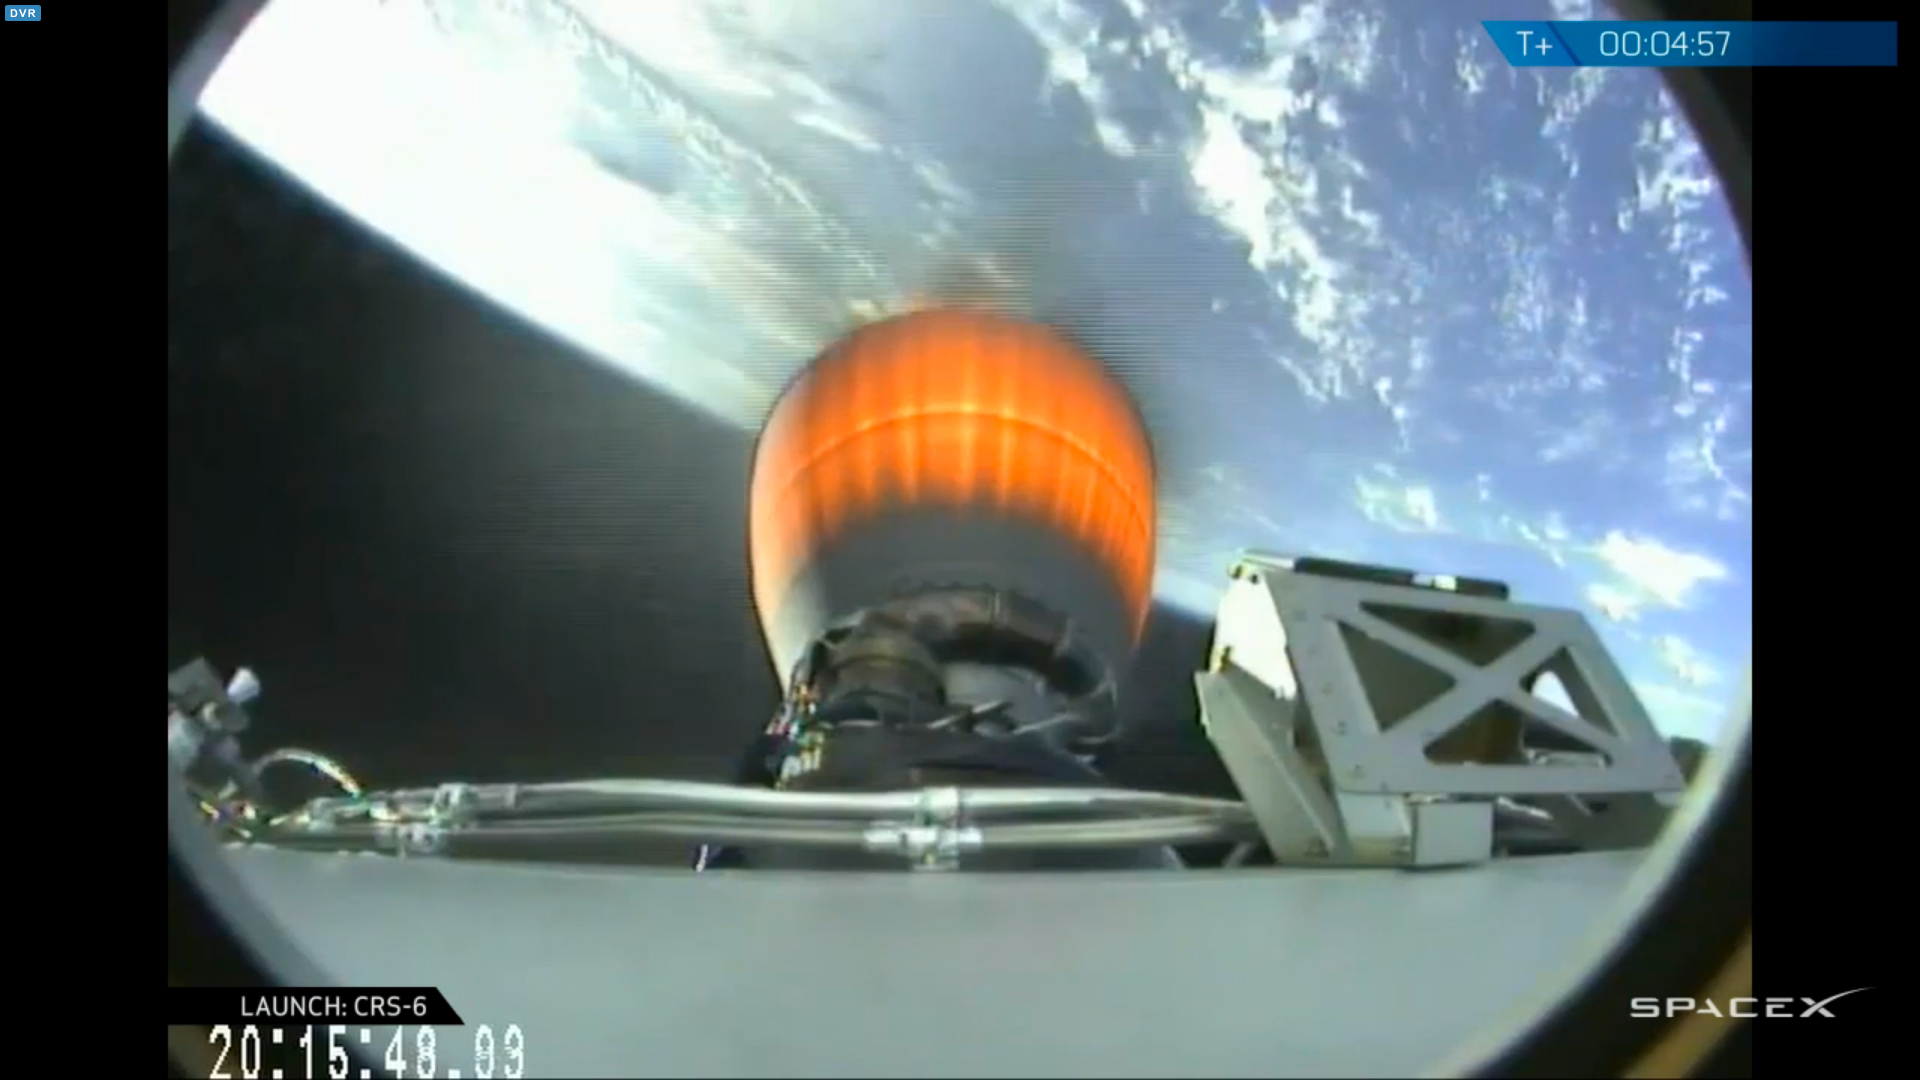 SpaceX CRS6 launch